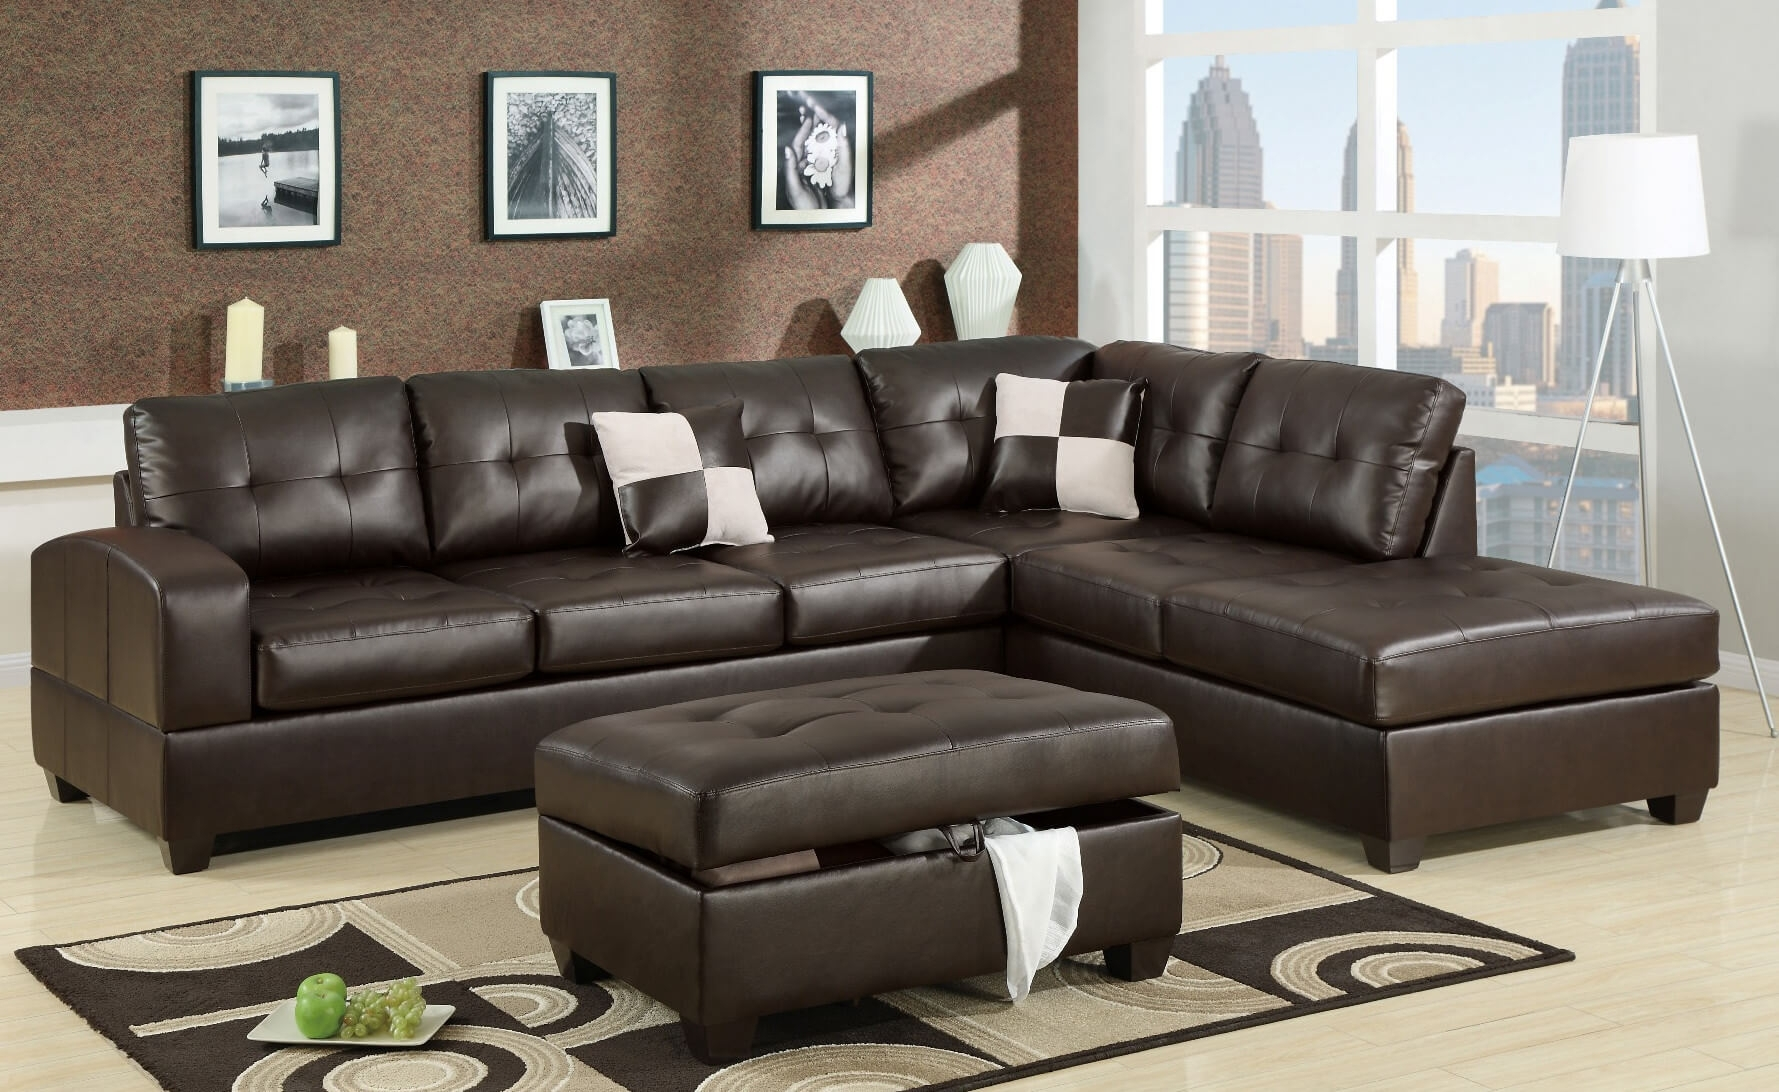 Cheap Sectional Sofas In Phoenix Az | Functionalities pertaining to Phoenix Arizona Sectional Sofas (Image 3 of 10)